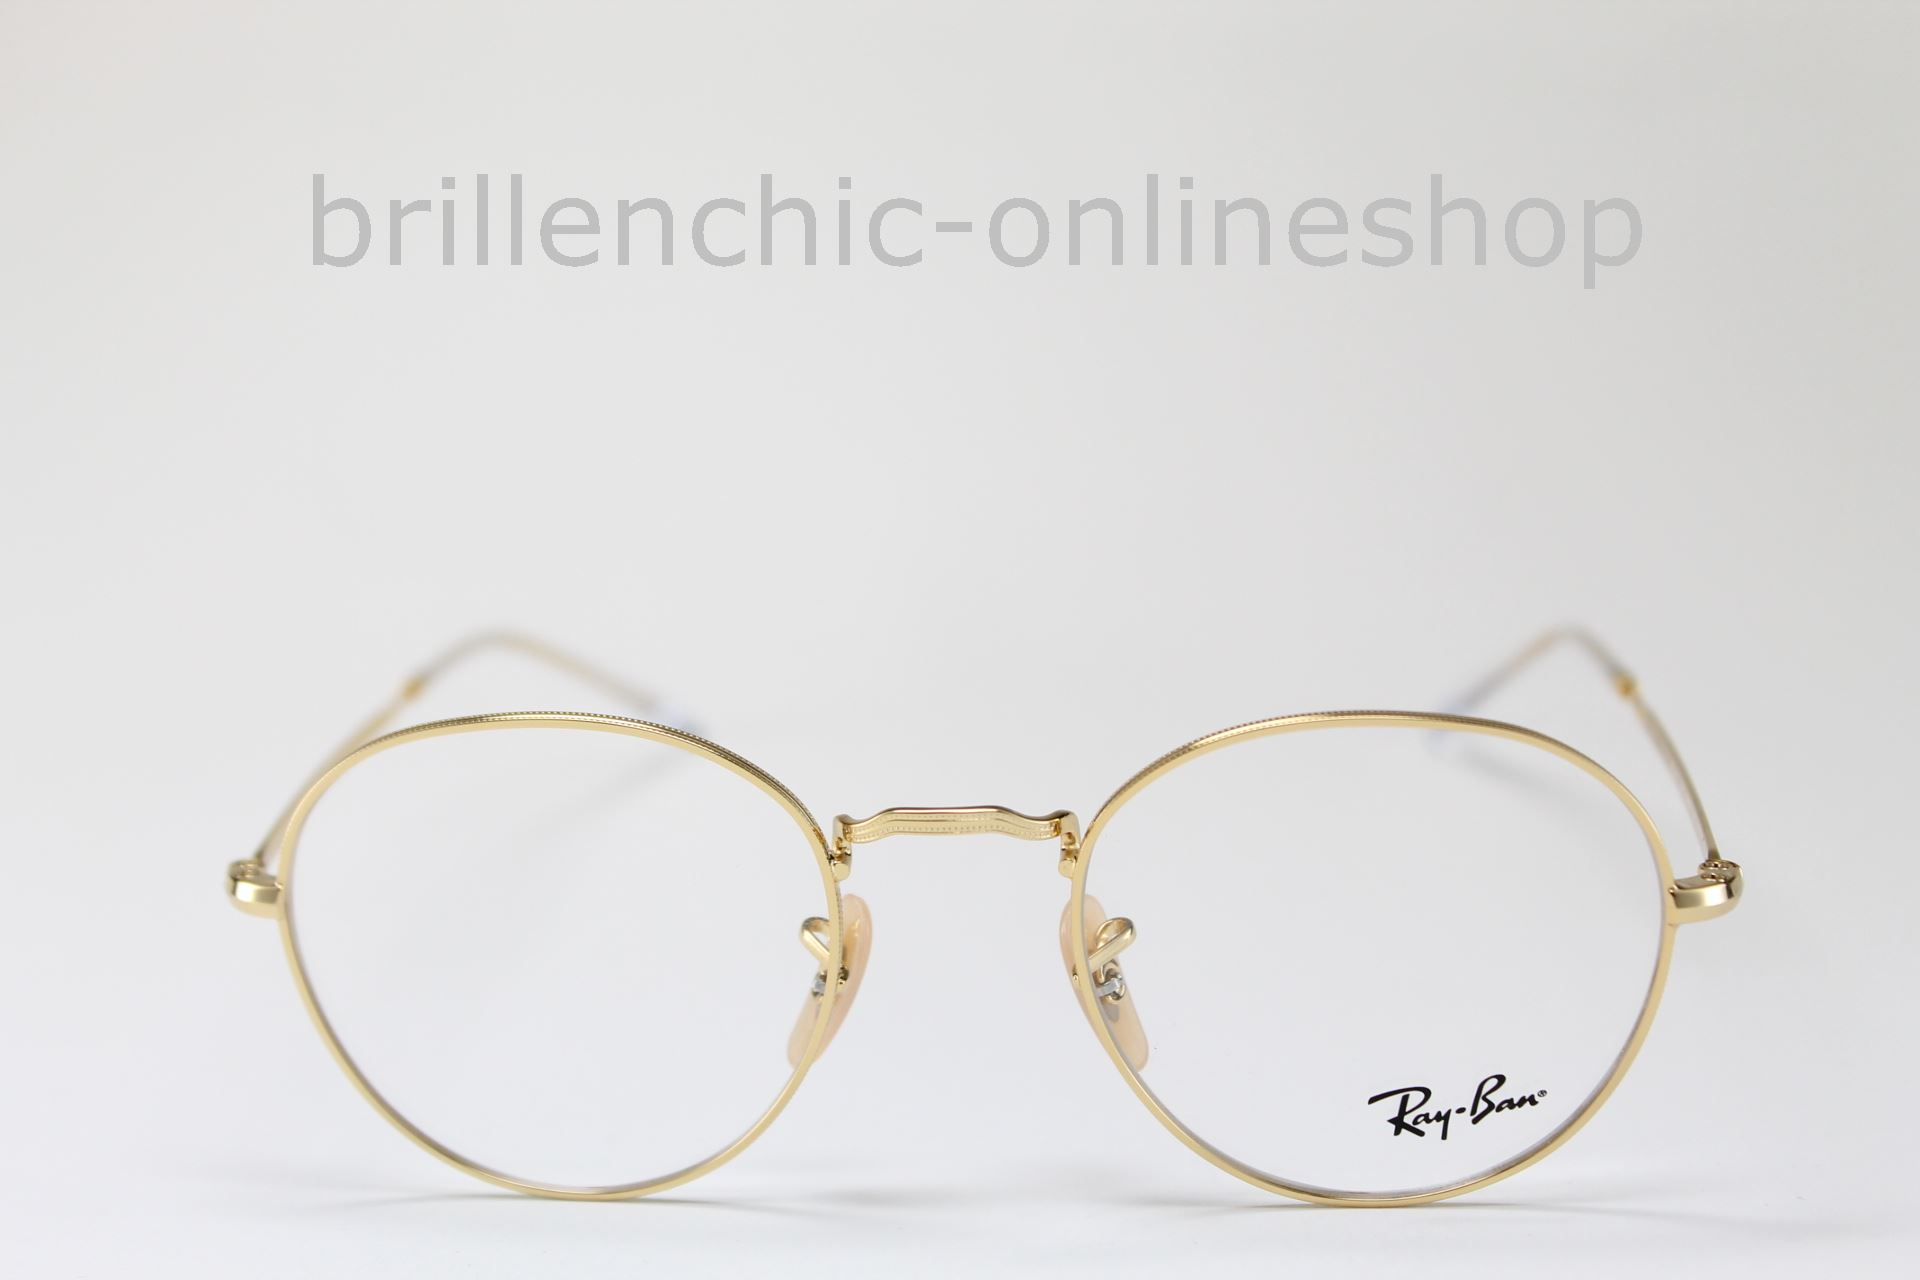 f738847e419 Brillenchic-onlineshop in Berlin - Ray Ban RB 3582V 3582 2500